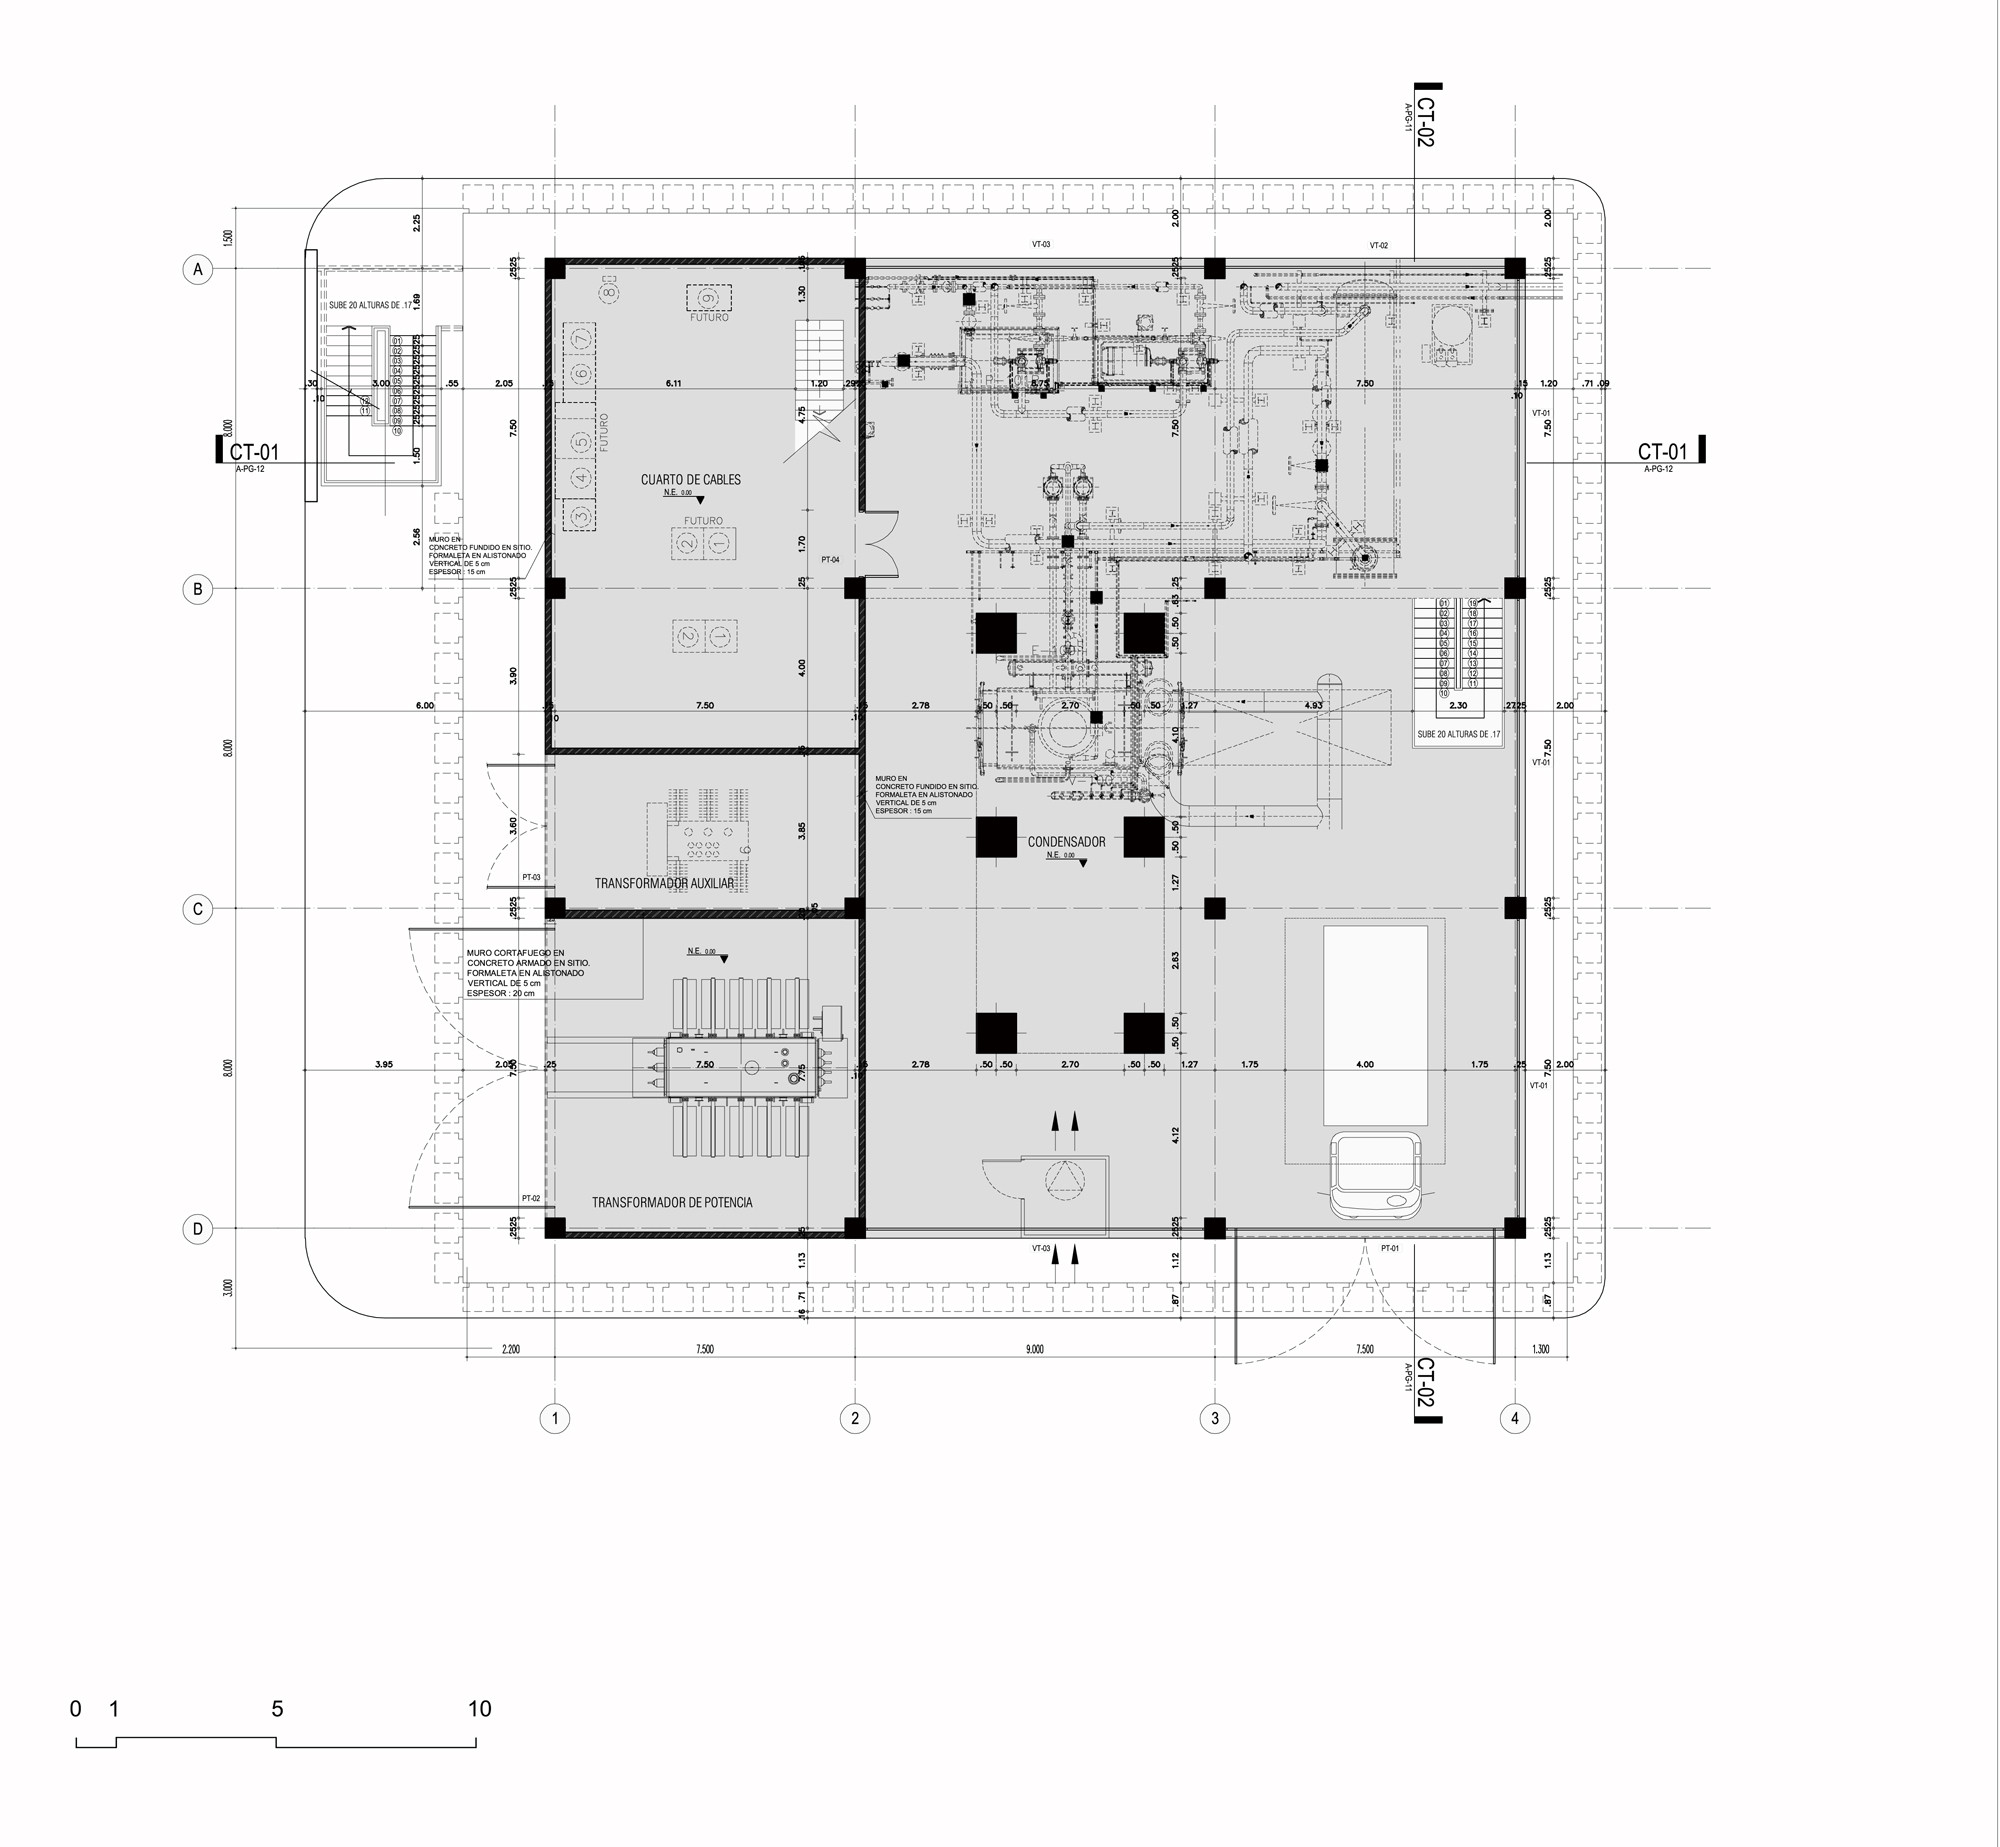 Amazing Electrical Floor Plan Layout Gallery - The Best Electrical ...